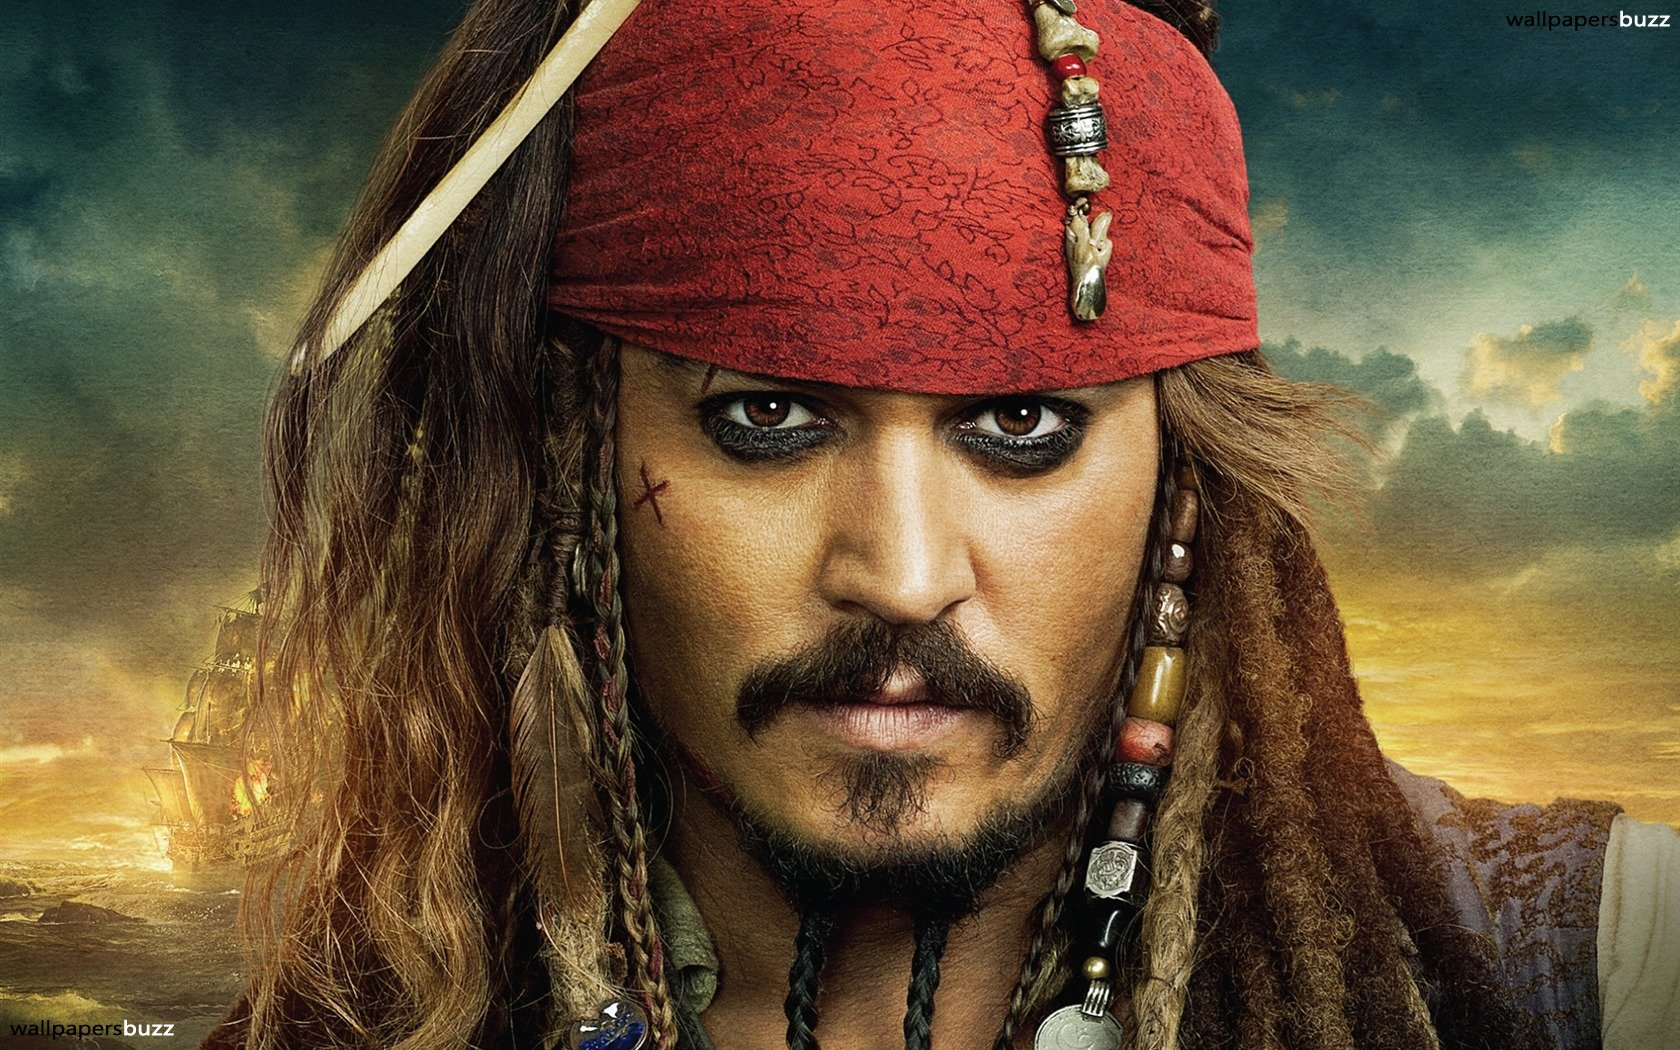 http://images5.fanpop.com/image/photos/29500000/Jack-Sparrow-johnny-depp-29558054-1680-1050.jpg